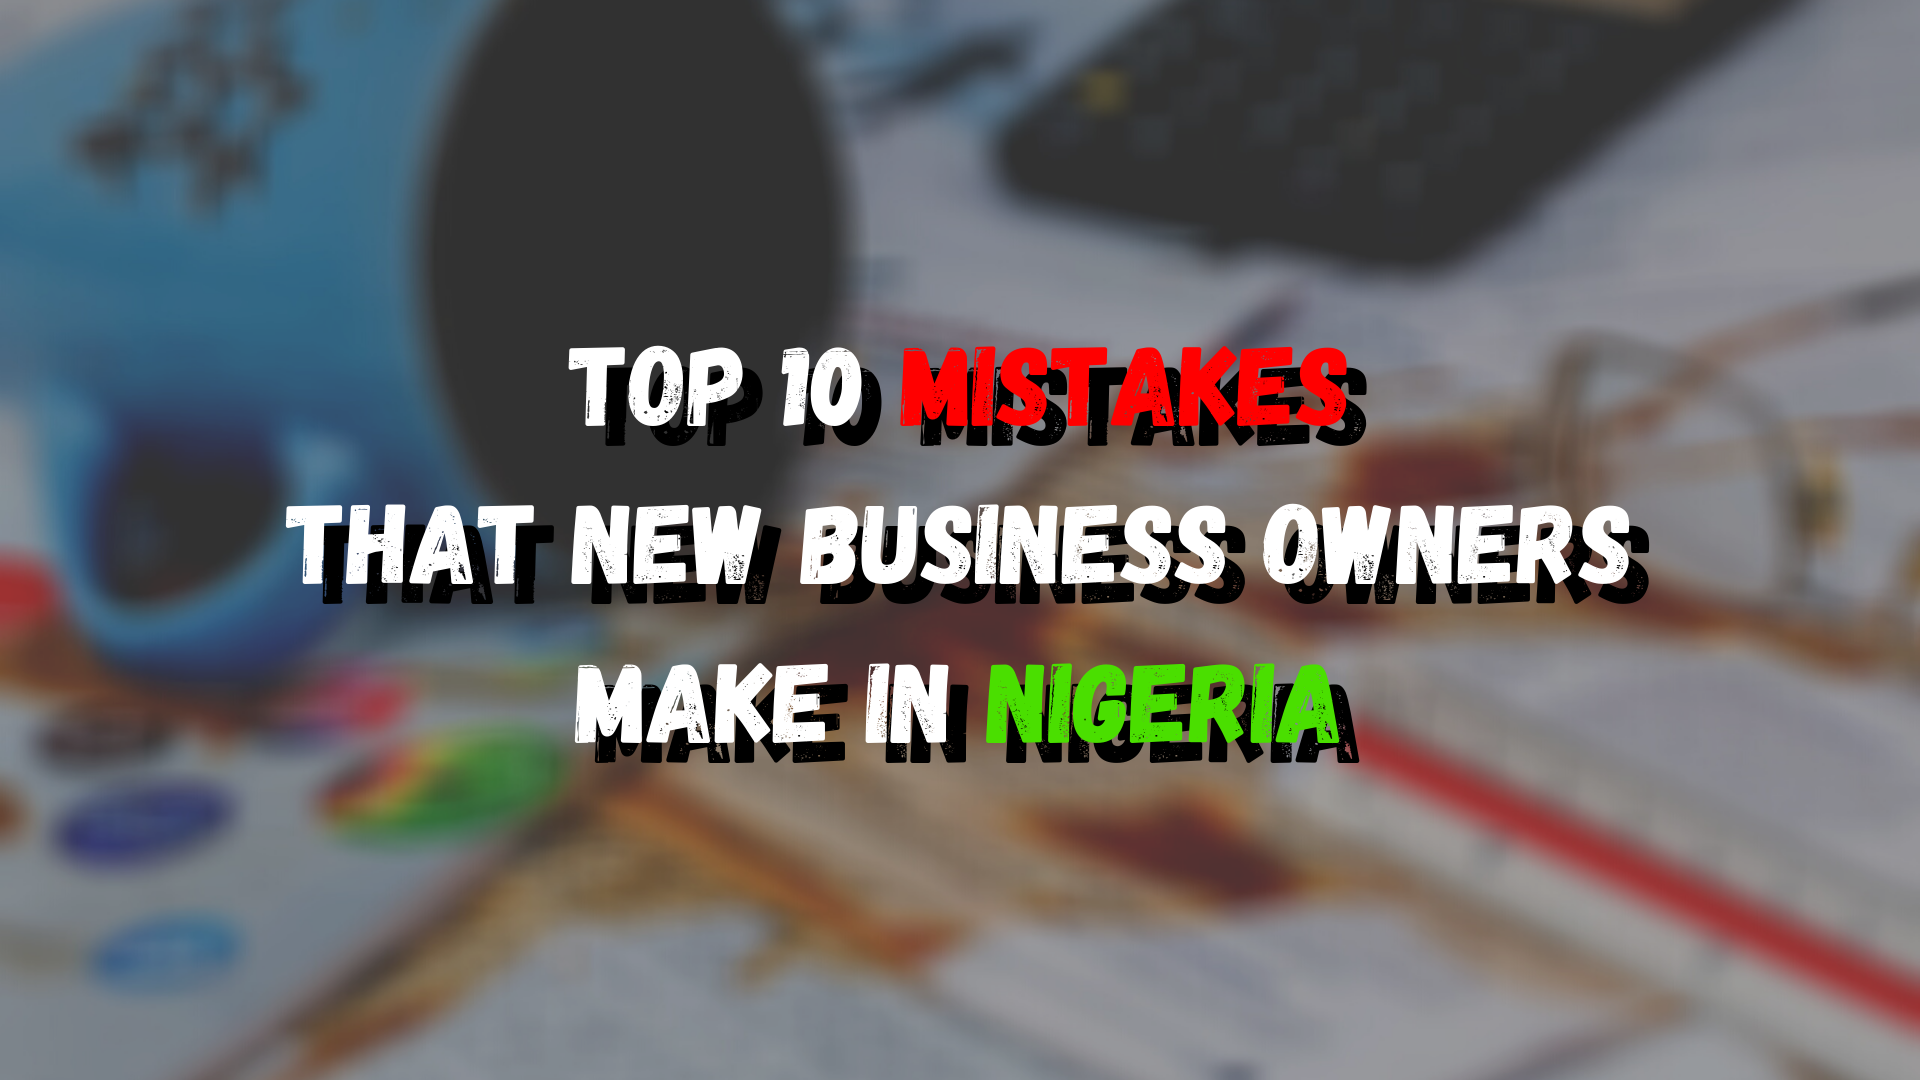 Top 10 Mistakes that Business Owners make in Nigeria